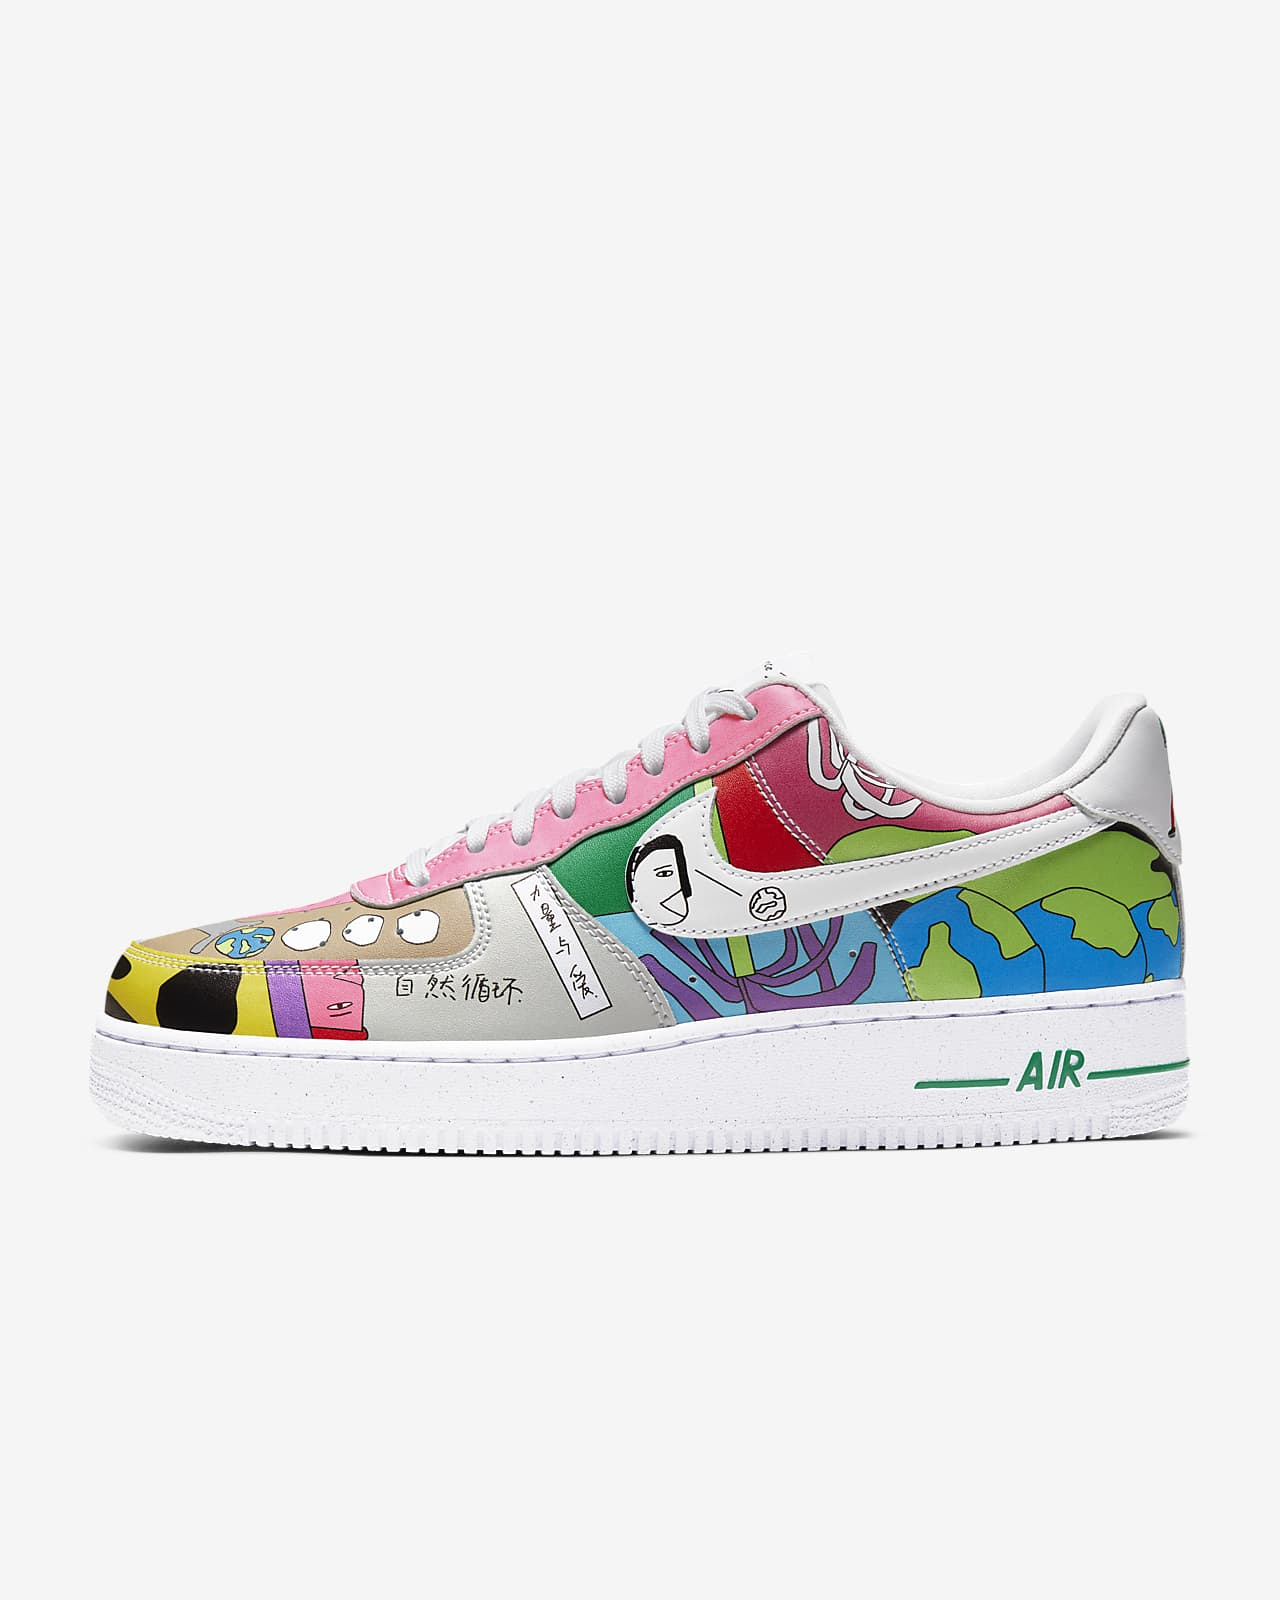 Nike Air Force 1 Flyleather Men's Shoe